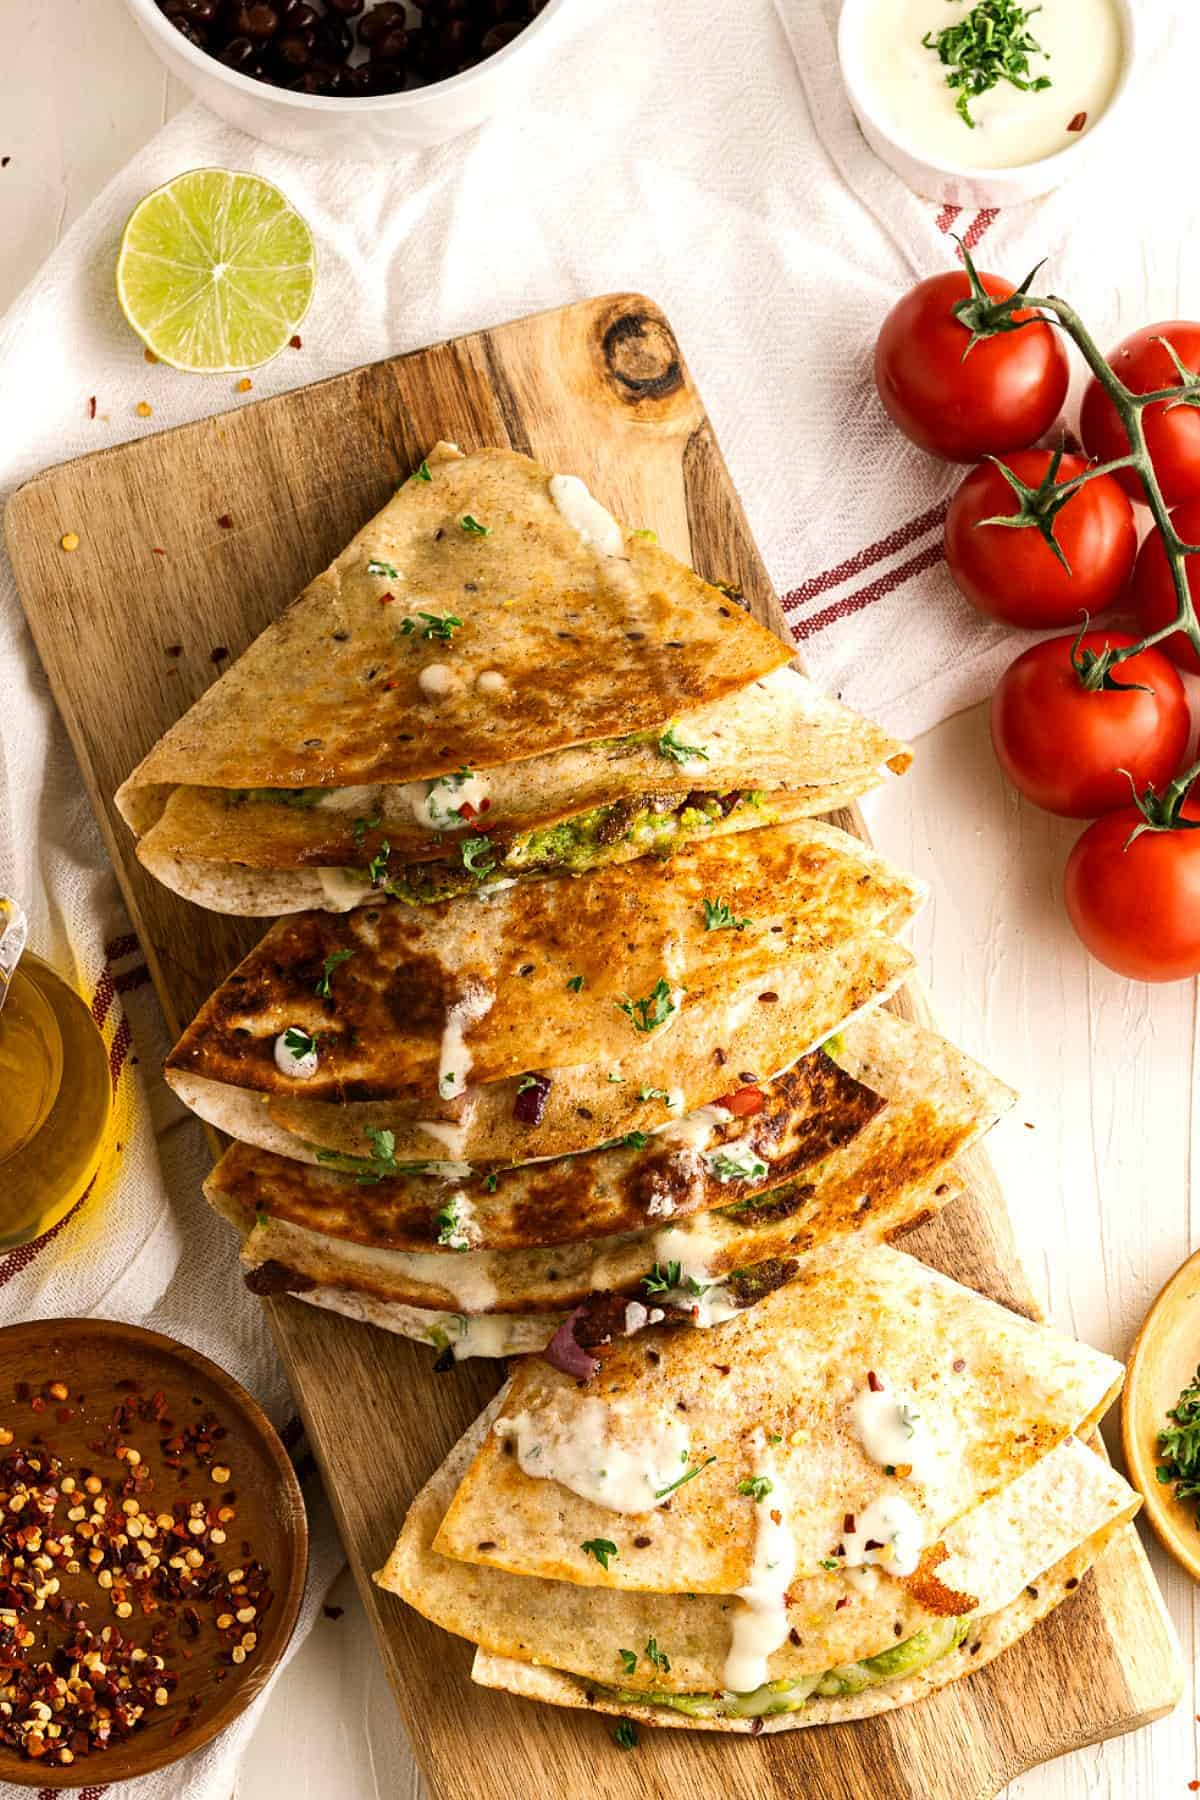 Overlapping folded and cooked tortilla sandwiches with vegan crema.